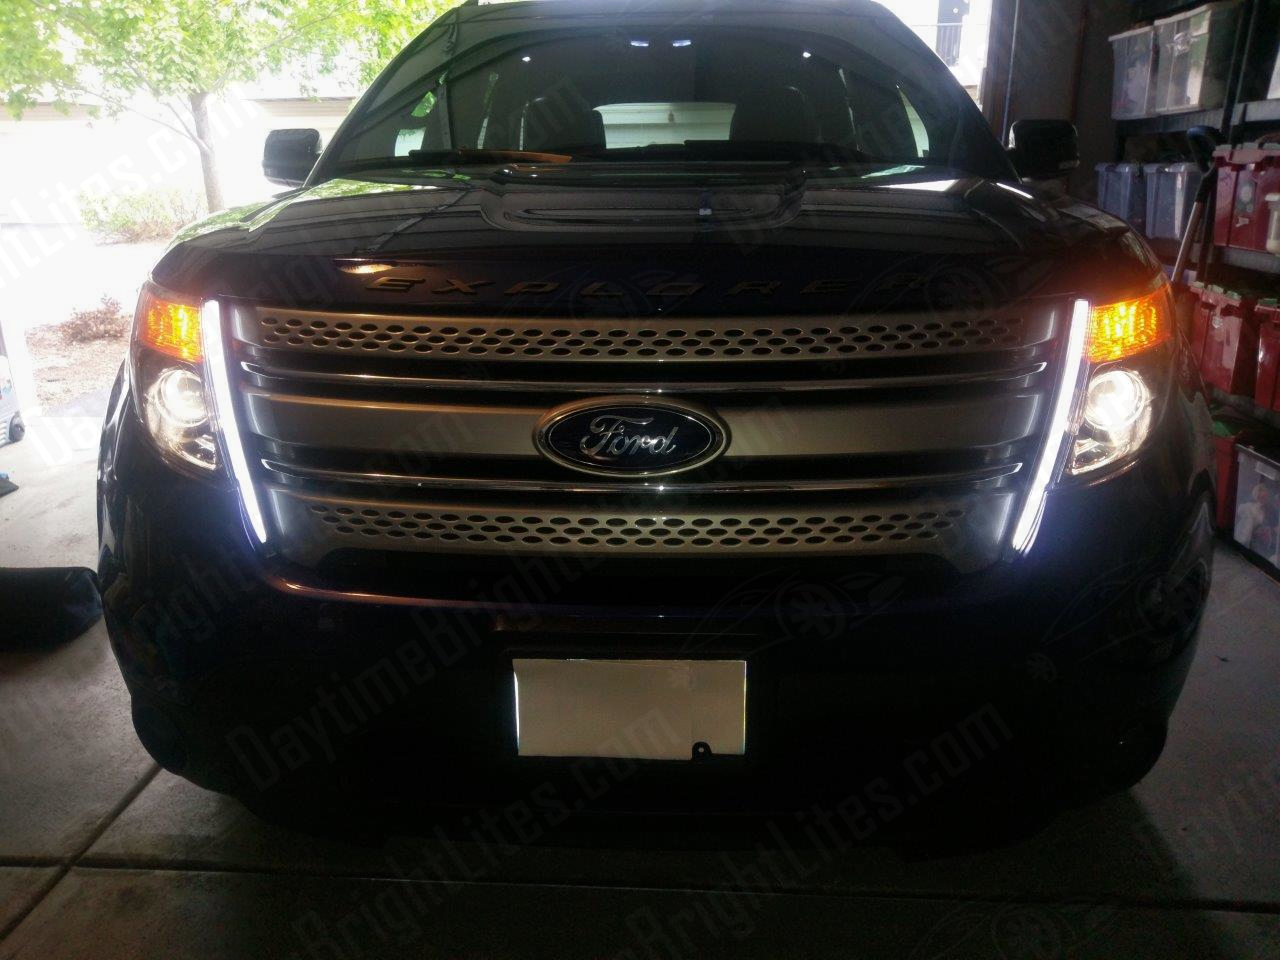 Ford Explorer Limited >> Drive Bright | Explorer LED Daytime Running Light Kit